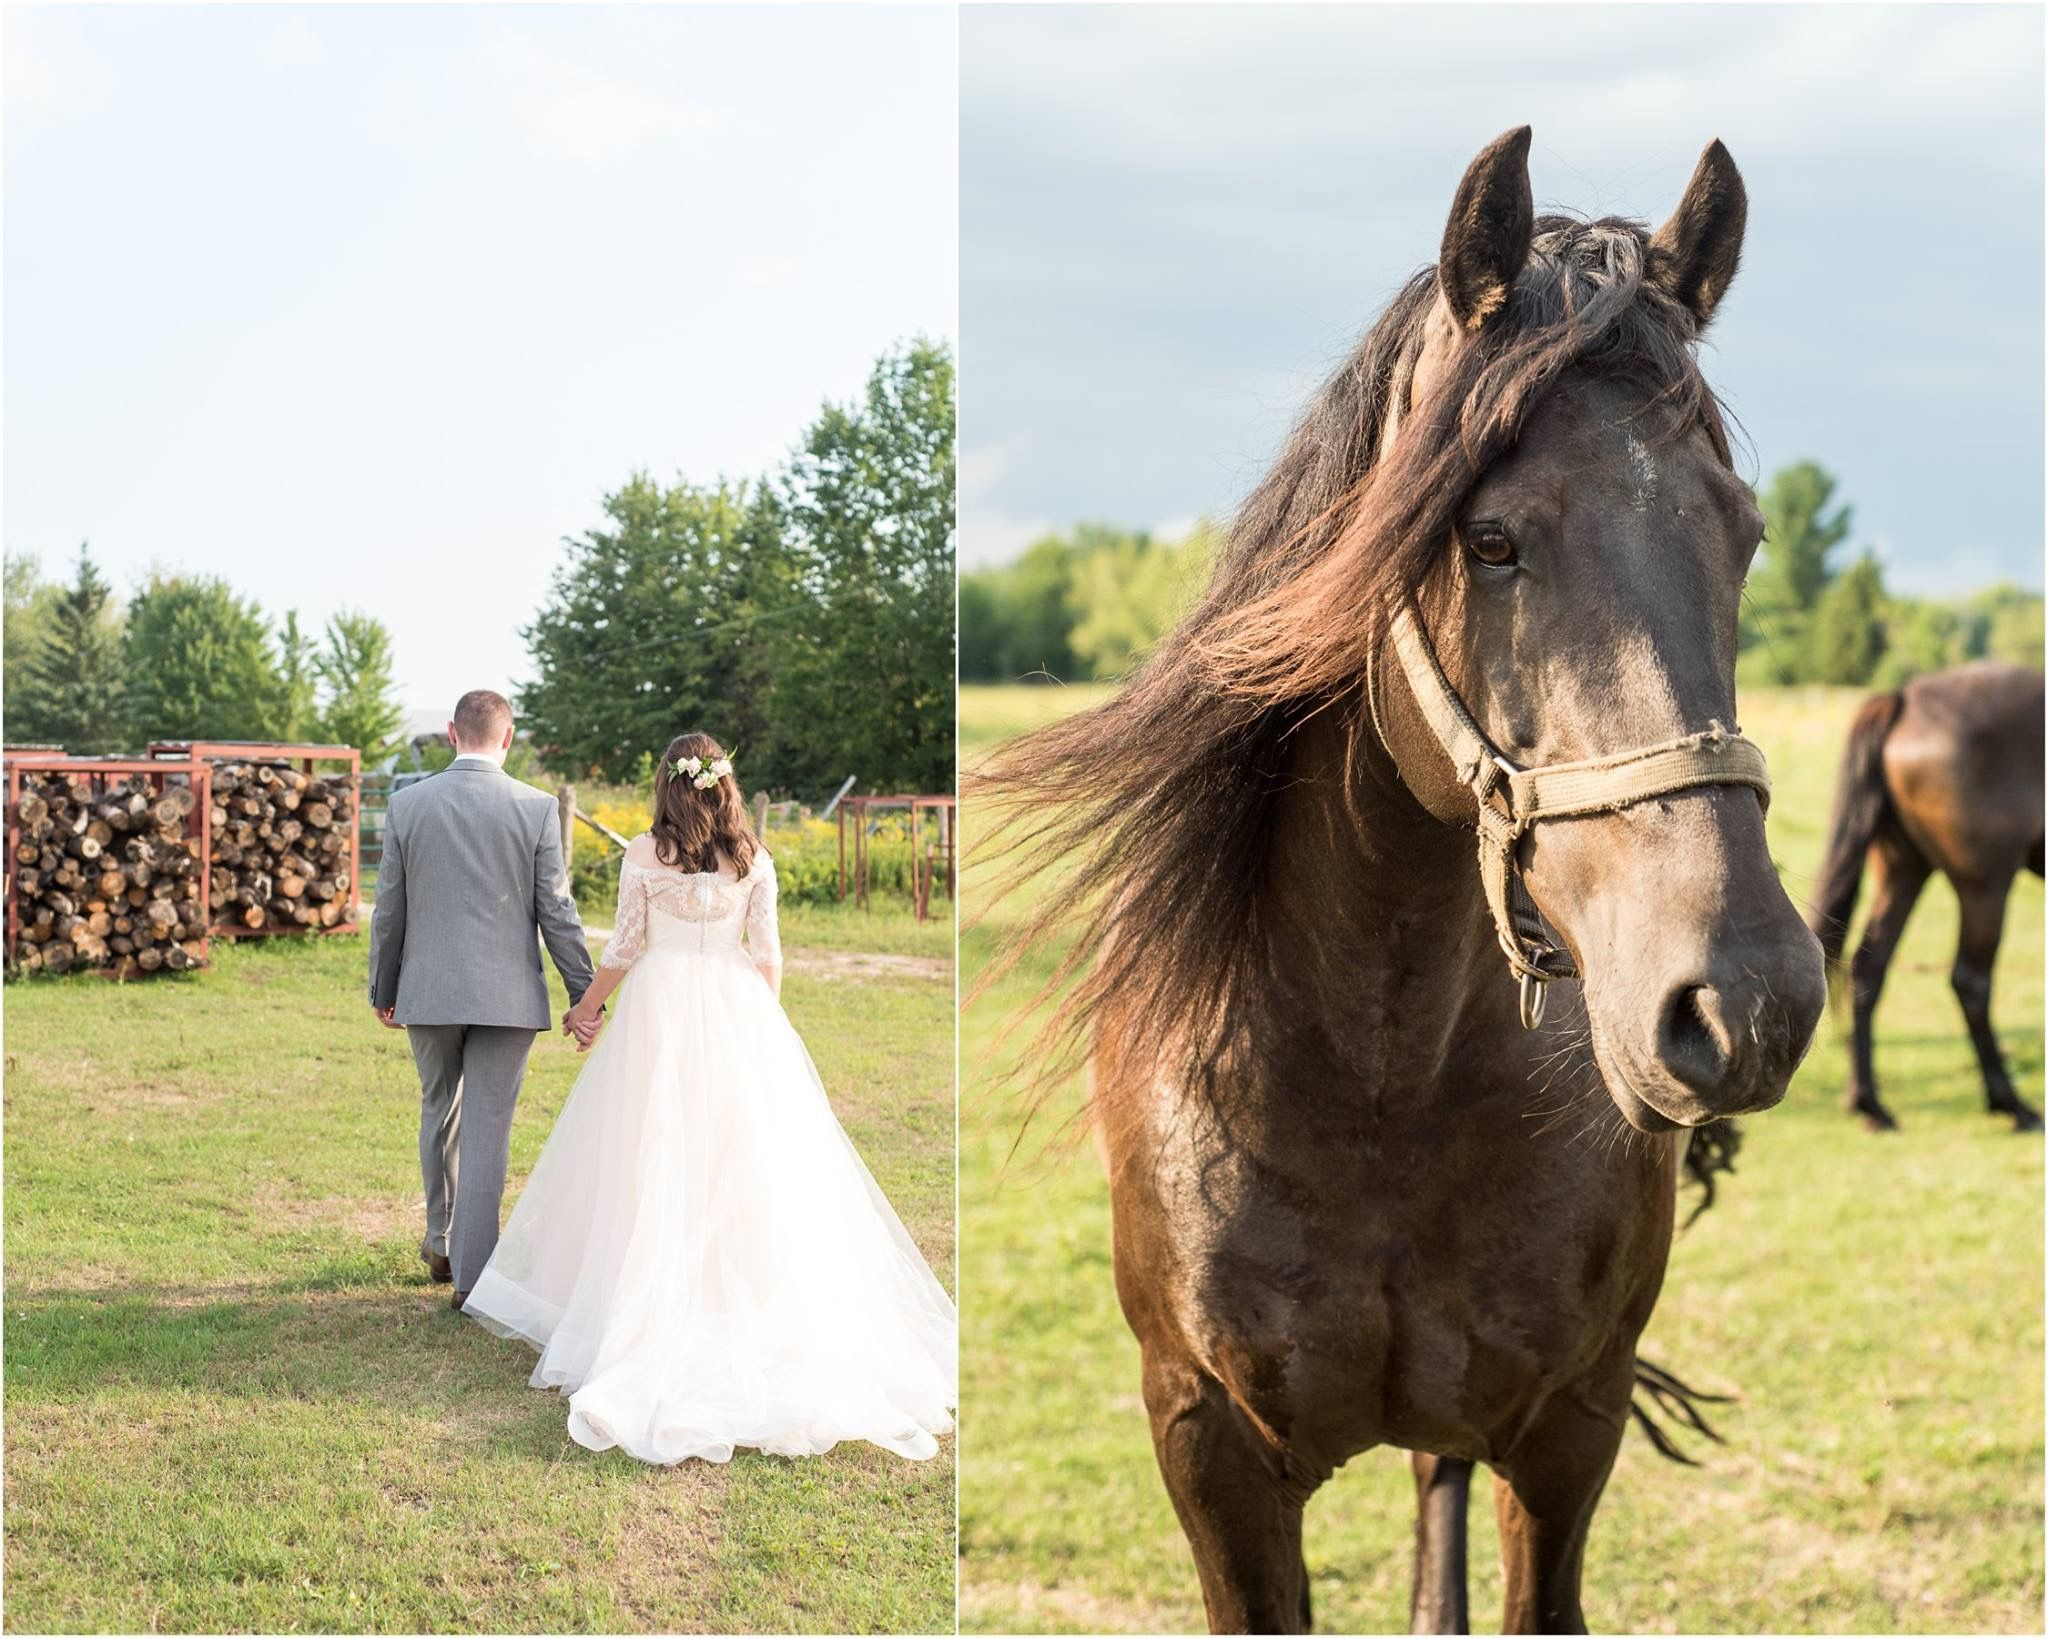 Tara keely real bride canadian wedding horse ottawa wedding